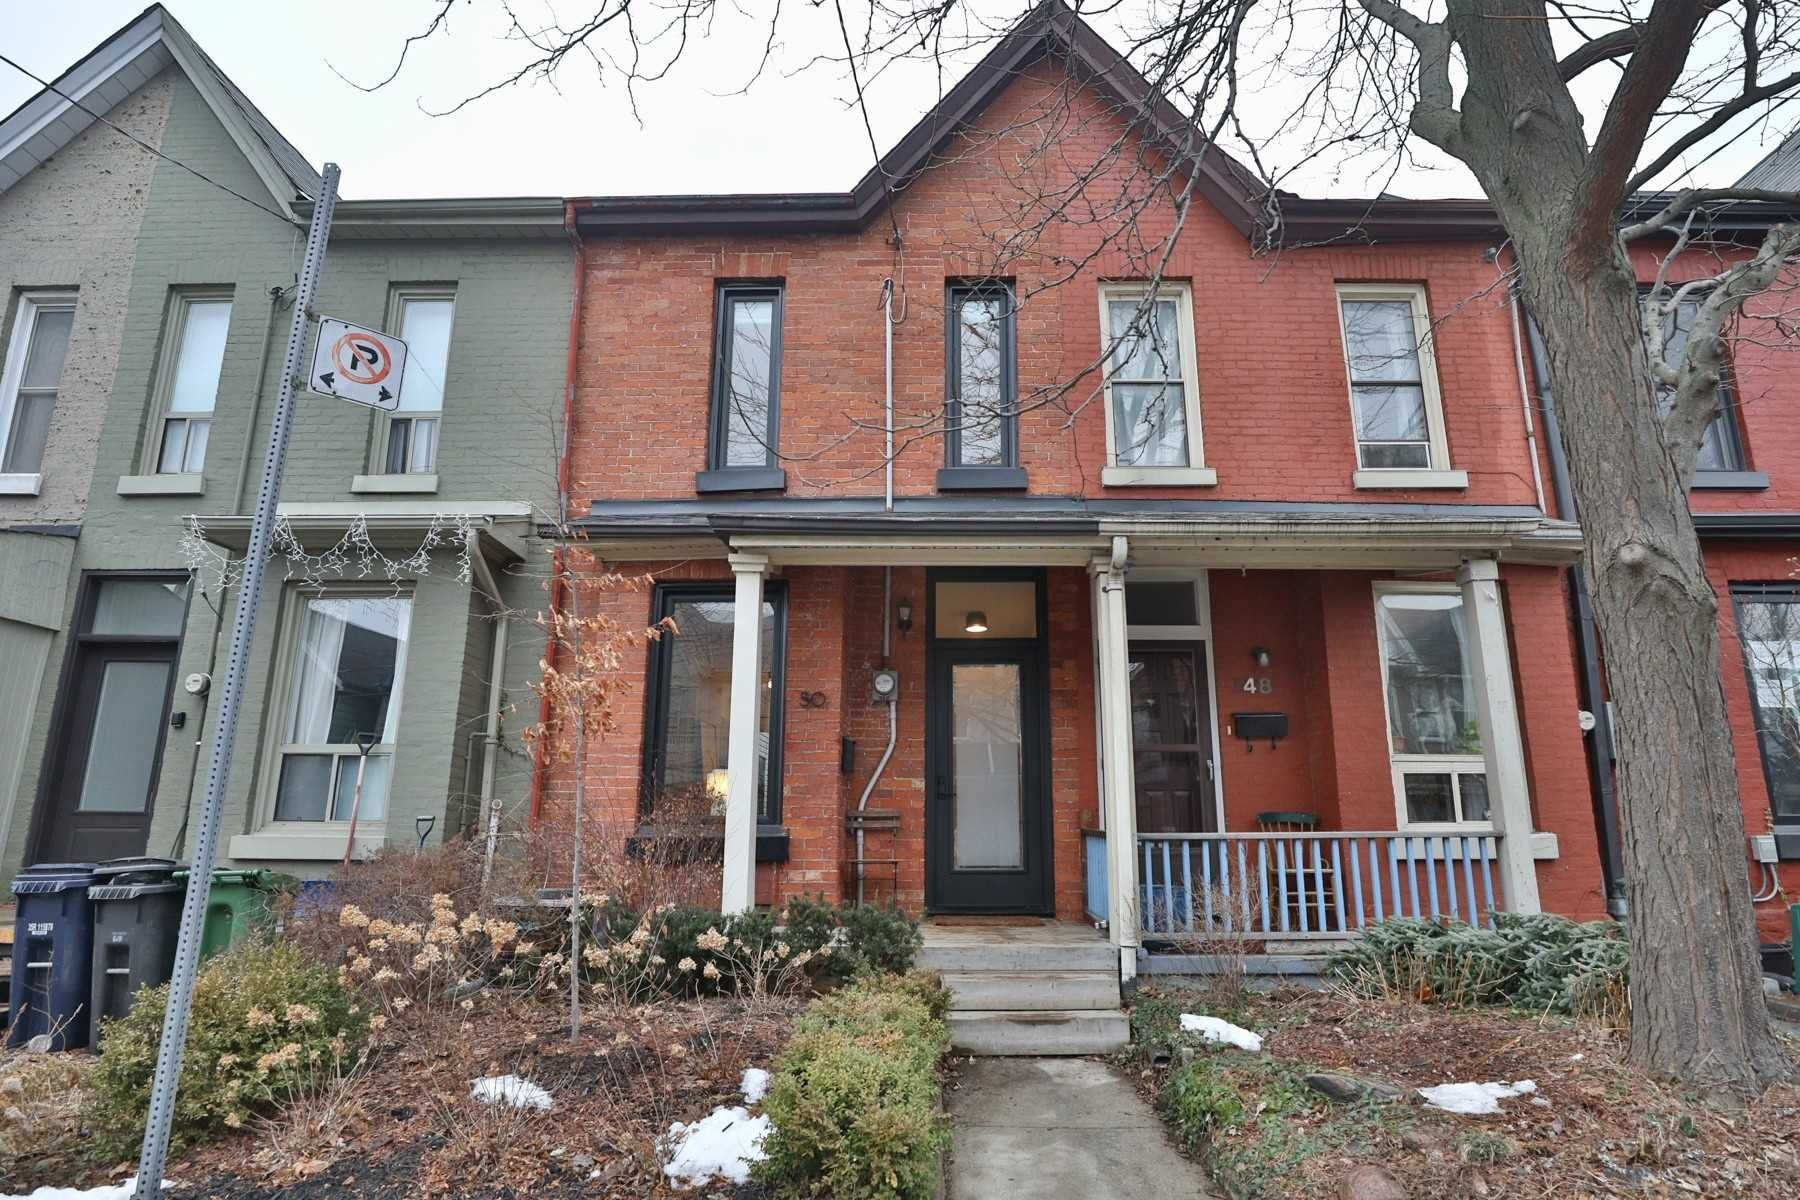 Main Photo: 50 Hickson Street in Toronto: Little Portugal House (2-Storey) for sale (Toronto C01)  : MLS®# C4667359